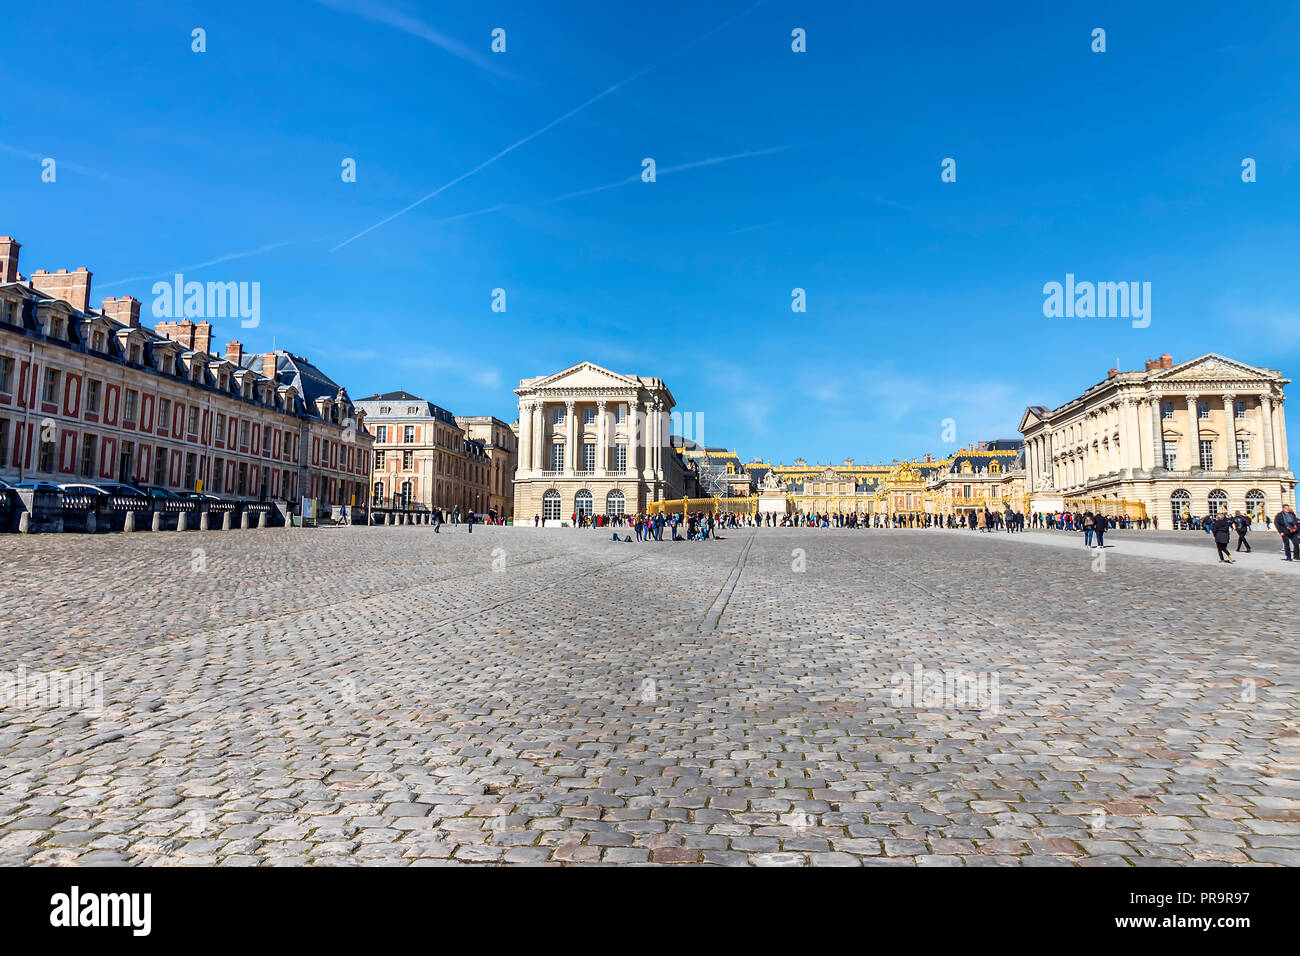 Exterior facade of Versailles Palace with tourists waiting the queue to visit it - Stock Image